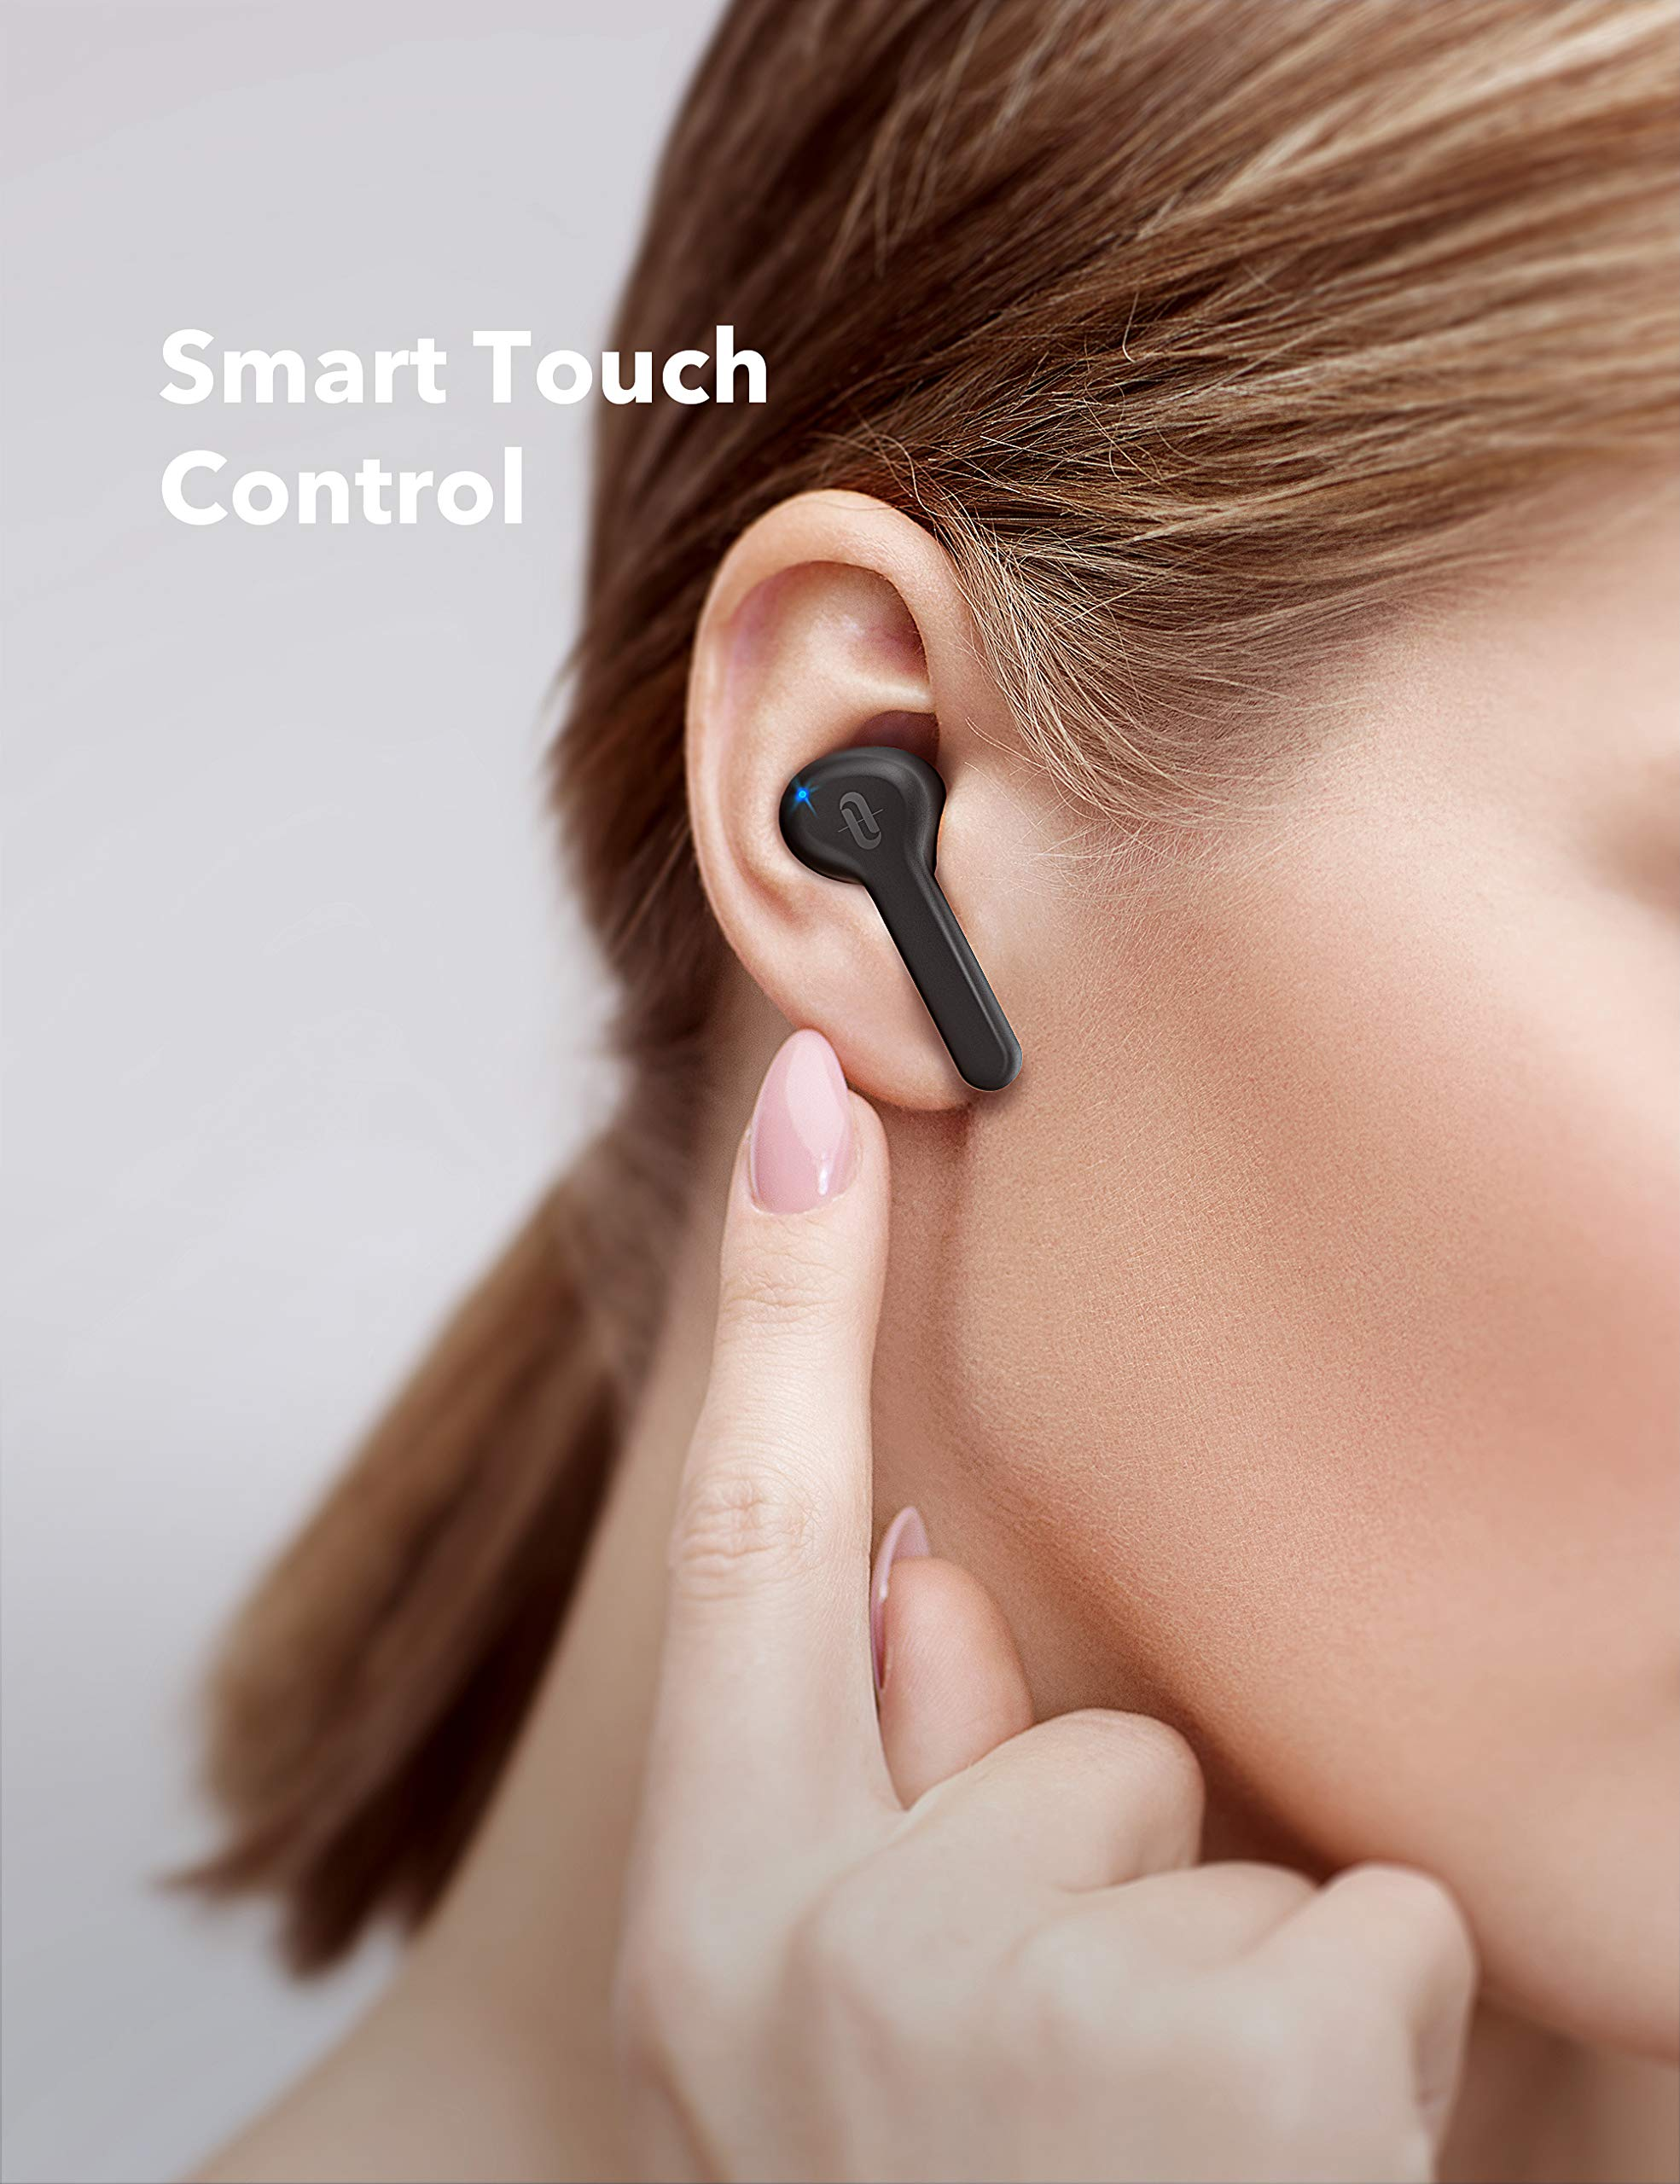 Wireless Earbuds, TaoTronics Bluetooth 5.0 Headphones SoundLiberty 53 in-Ear Earphones IPX7 Waterproof Smart Touch Control Bluetooth Earbuds Single/Twin Mode with Built-in Mic 40 H Playtime TT-BH053 by TaoTronics (Image #2)